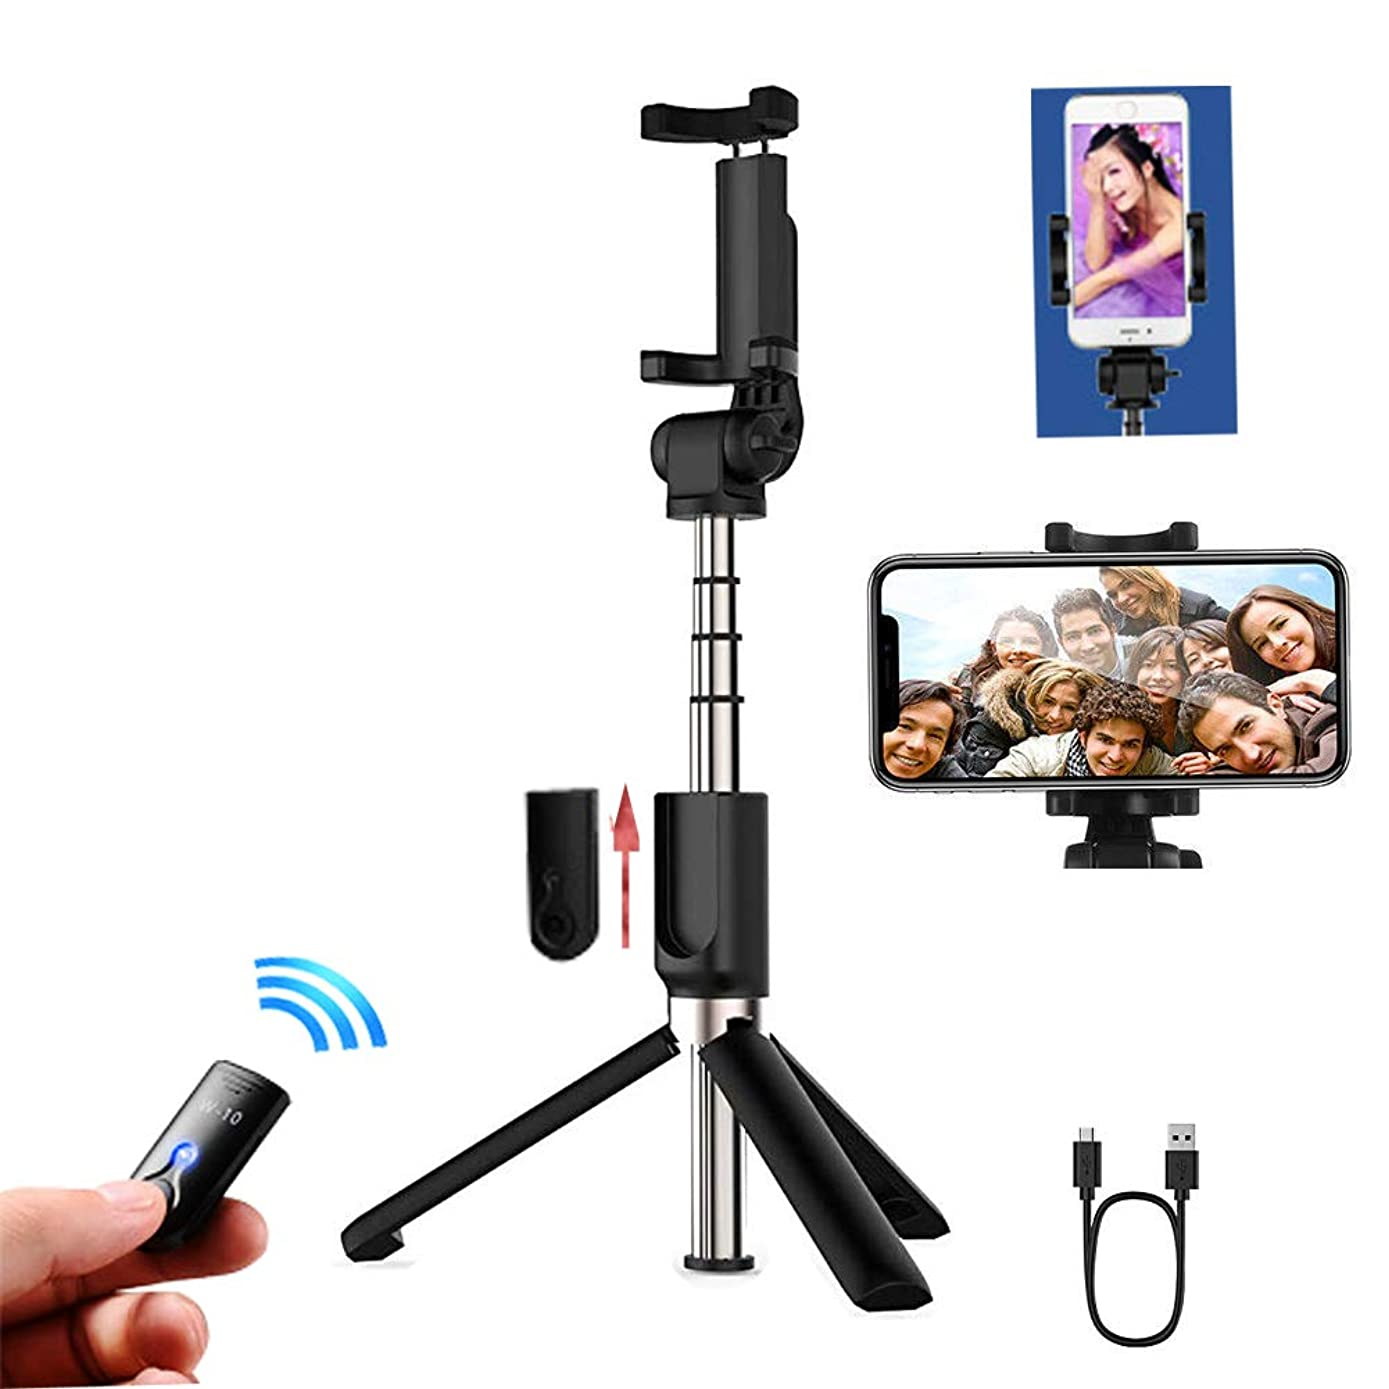 Selfie Stick,Bluetooth Mobile Phone Selfie Stick Mini Aluminum Alloy self-Timer Artifact Come with Tripod